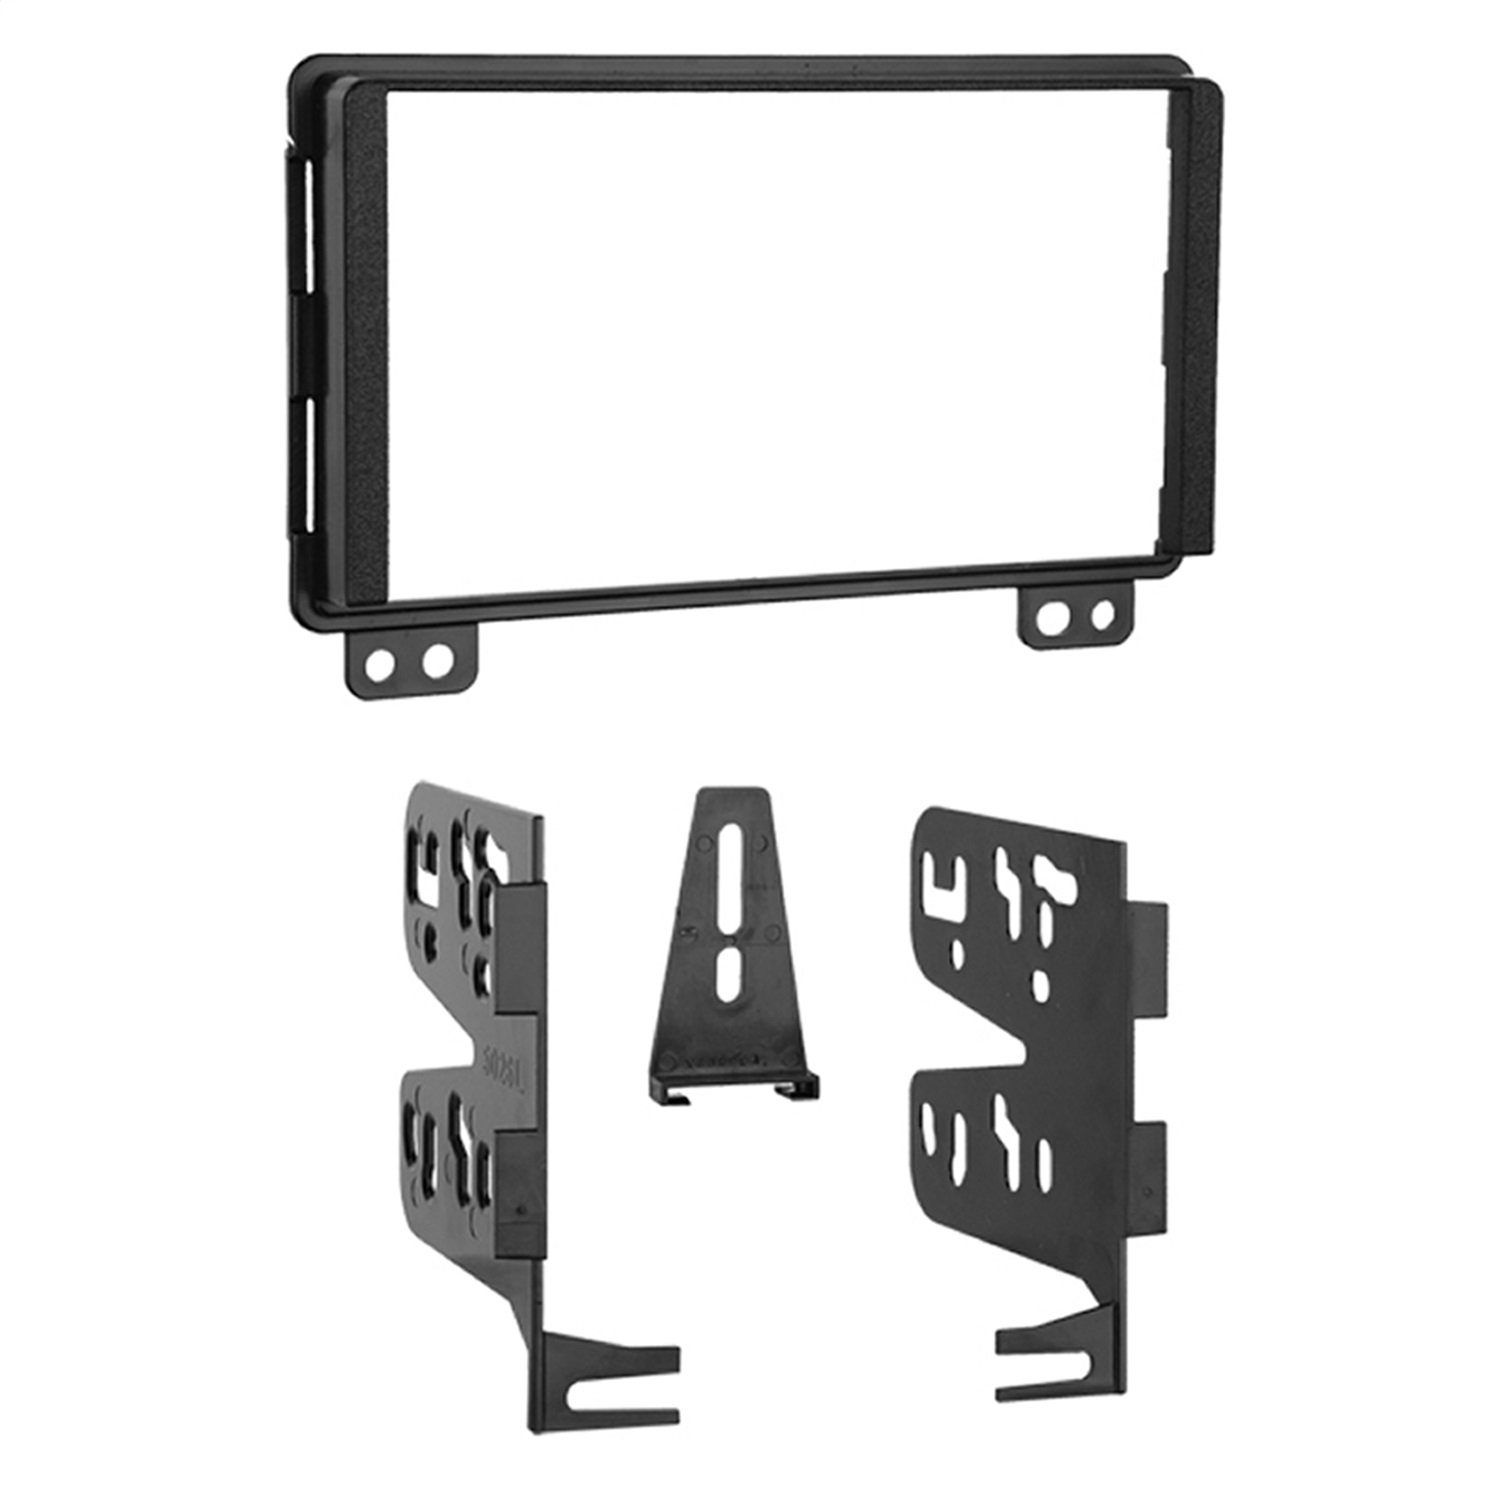 Metra 95-5026 Double DIN Installation Kit for Select 2001-up Ford, Lincoln and Mercury Vehicles (Black) Metra Electronics Corporation